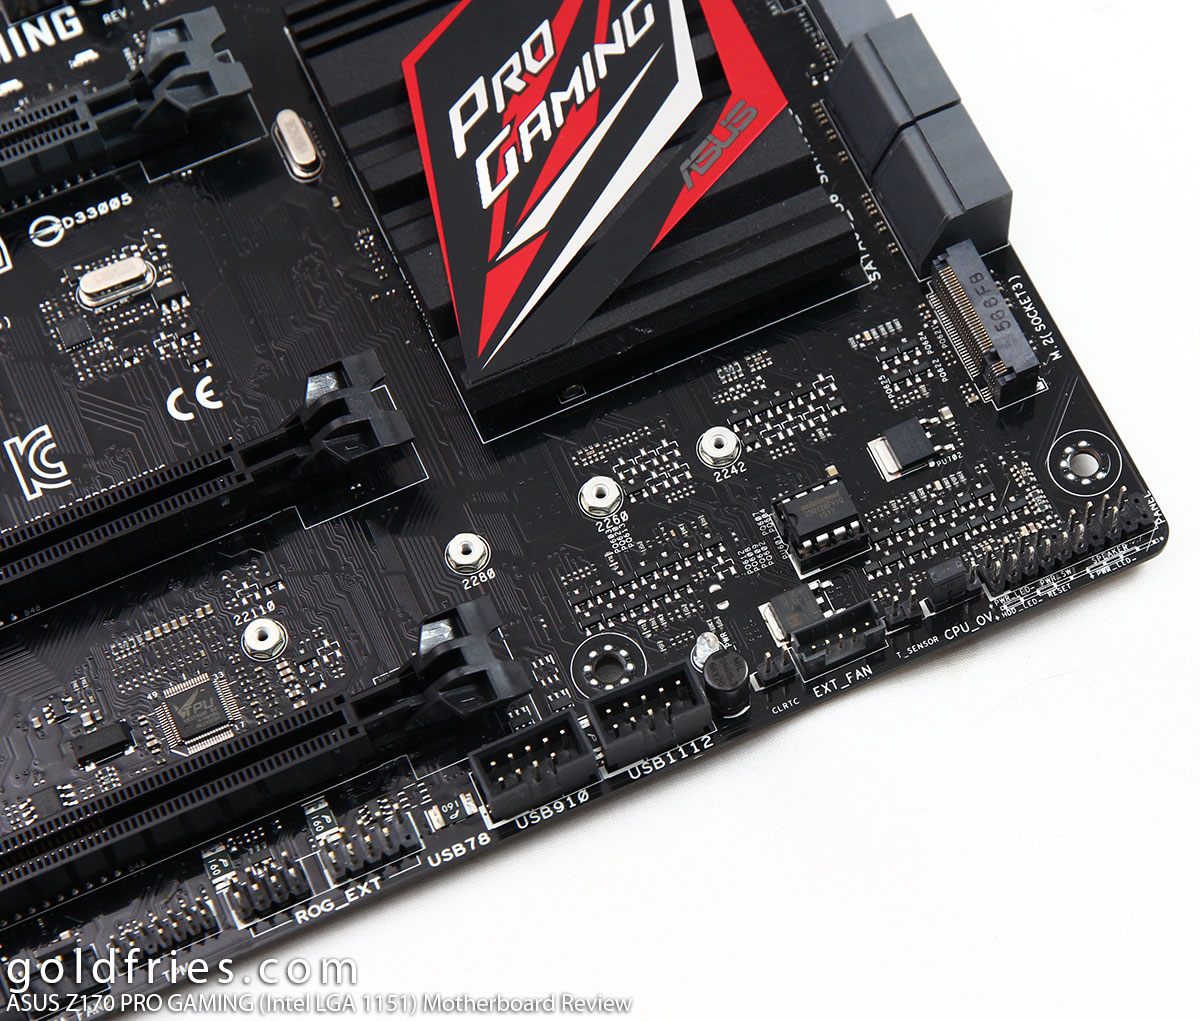 ASUS Z170 PRO GAMING (Intel LGA 1151) Motherboard Review